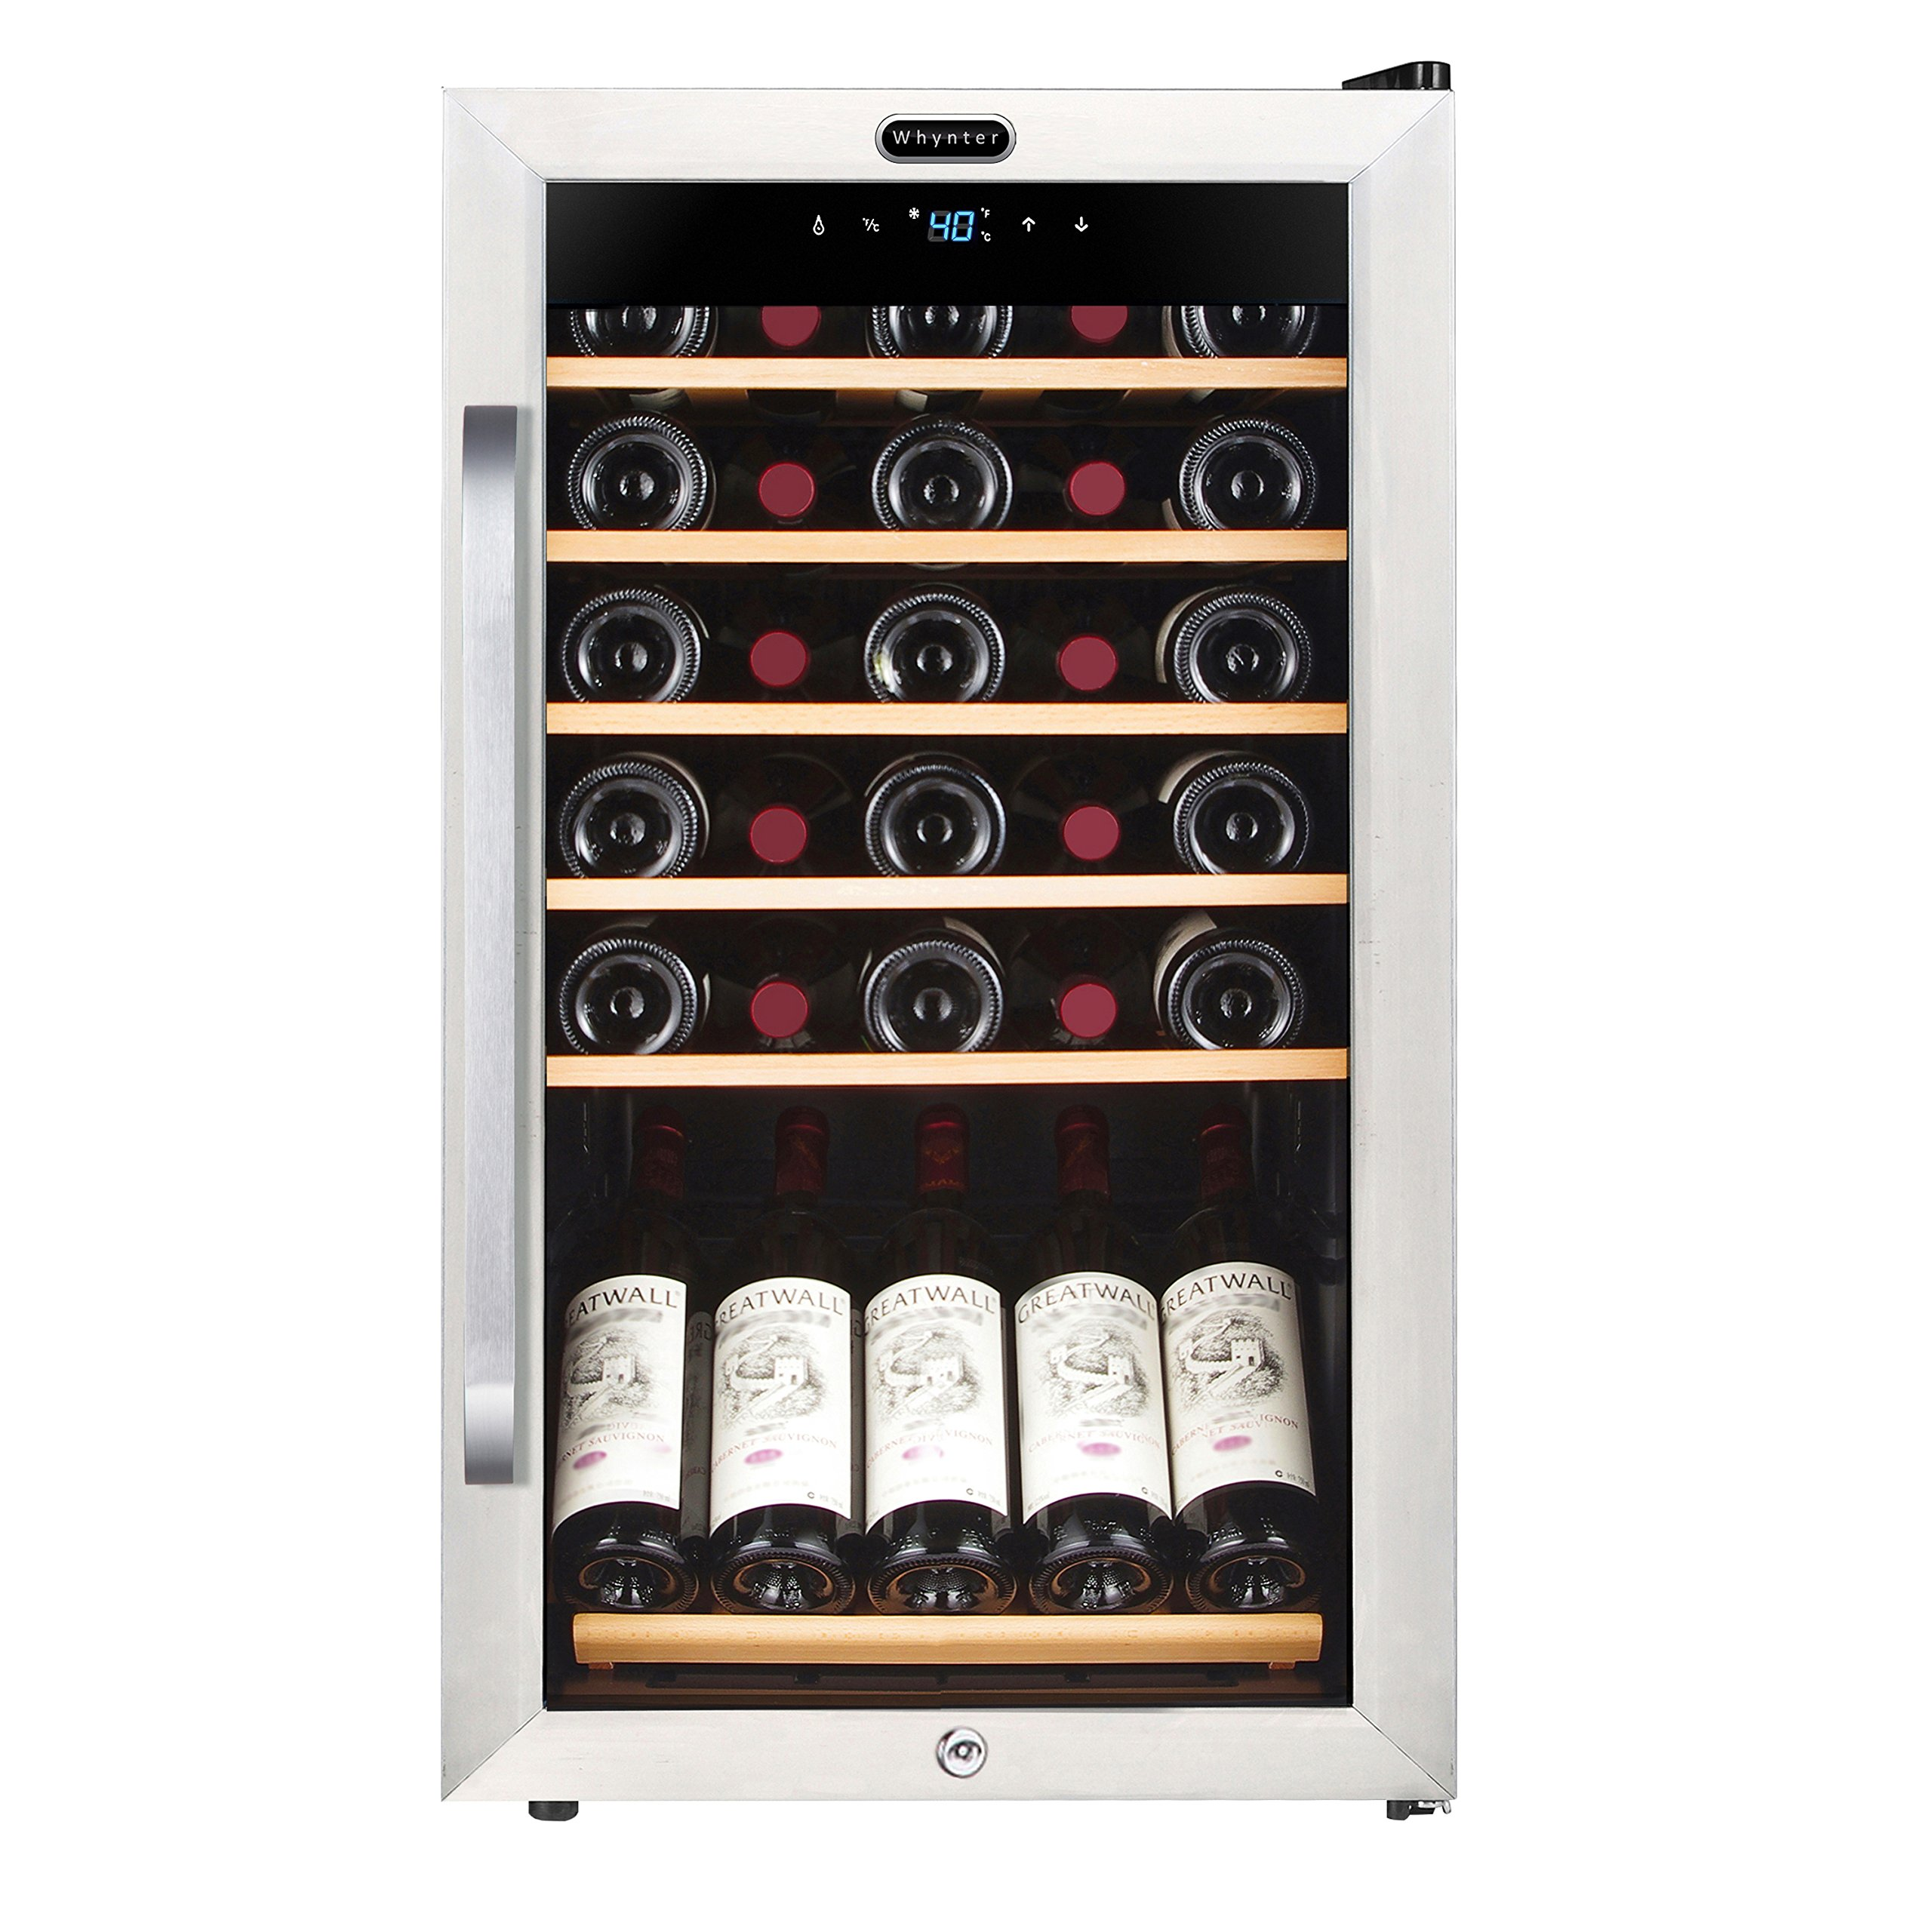 Whynter FWC-341TS 34 Bottle Freestanding Wine Refrigerator with Display Shelf and Digital Control, Stainless Steel